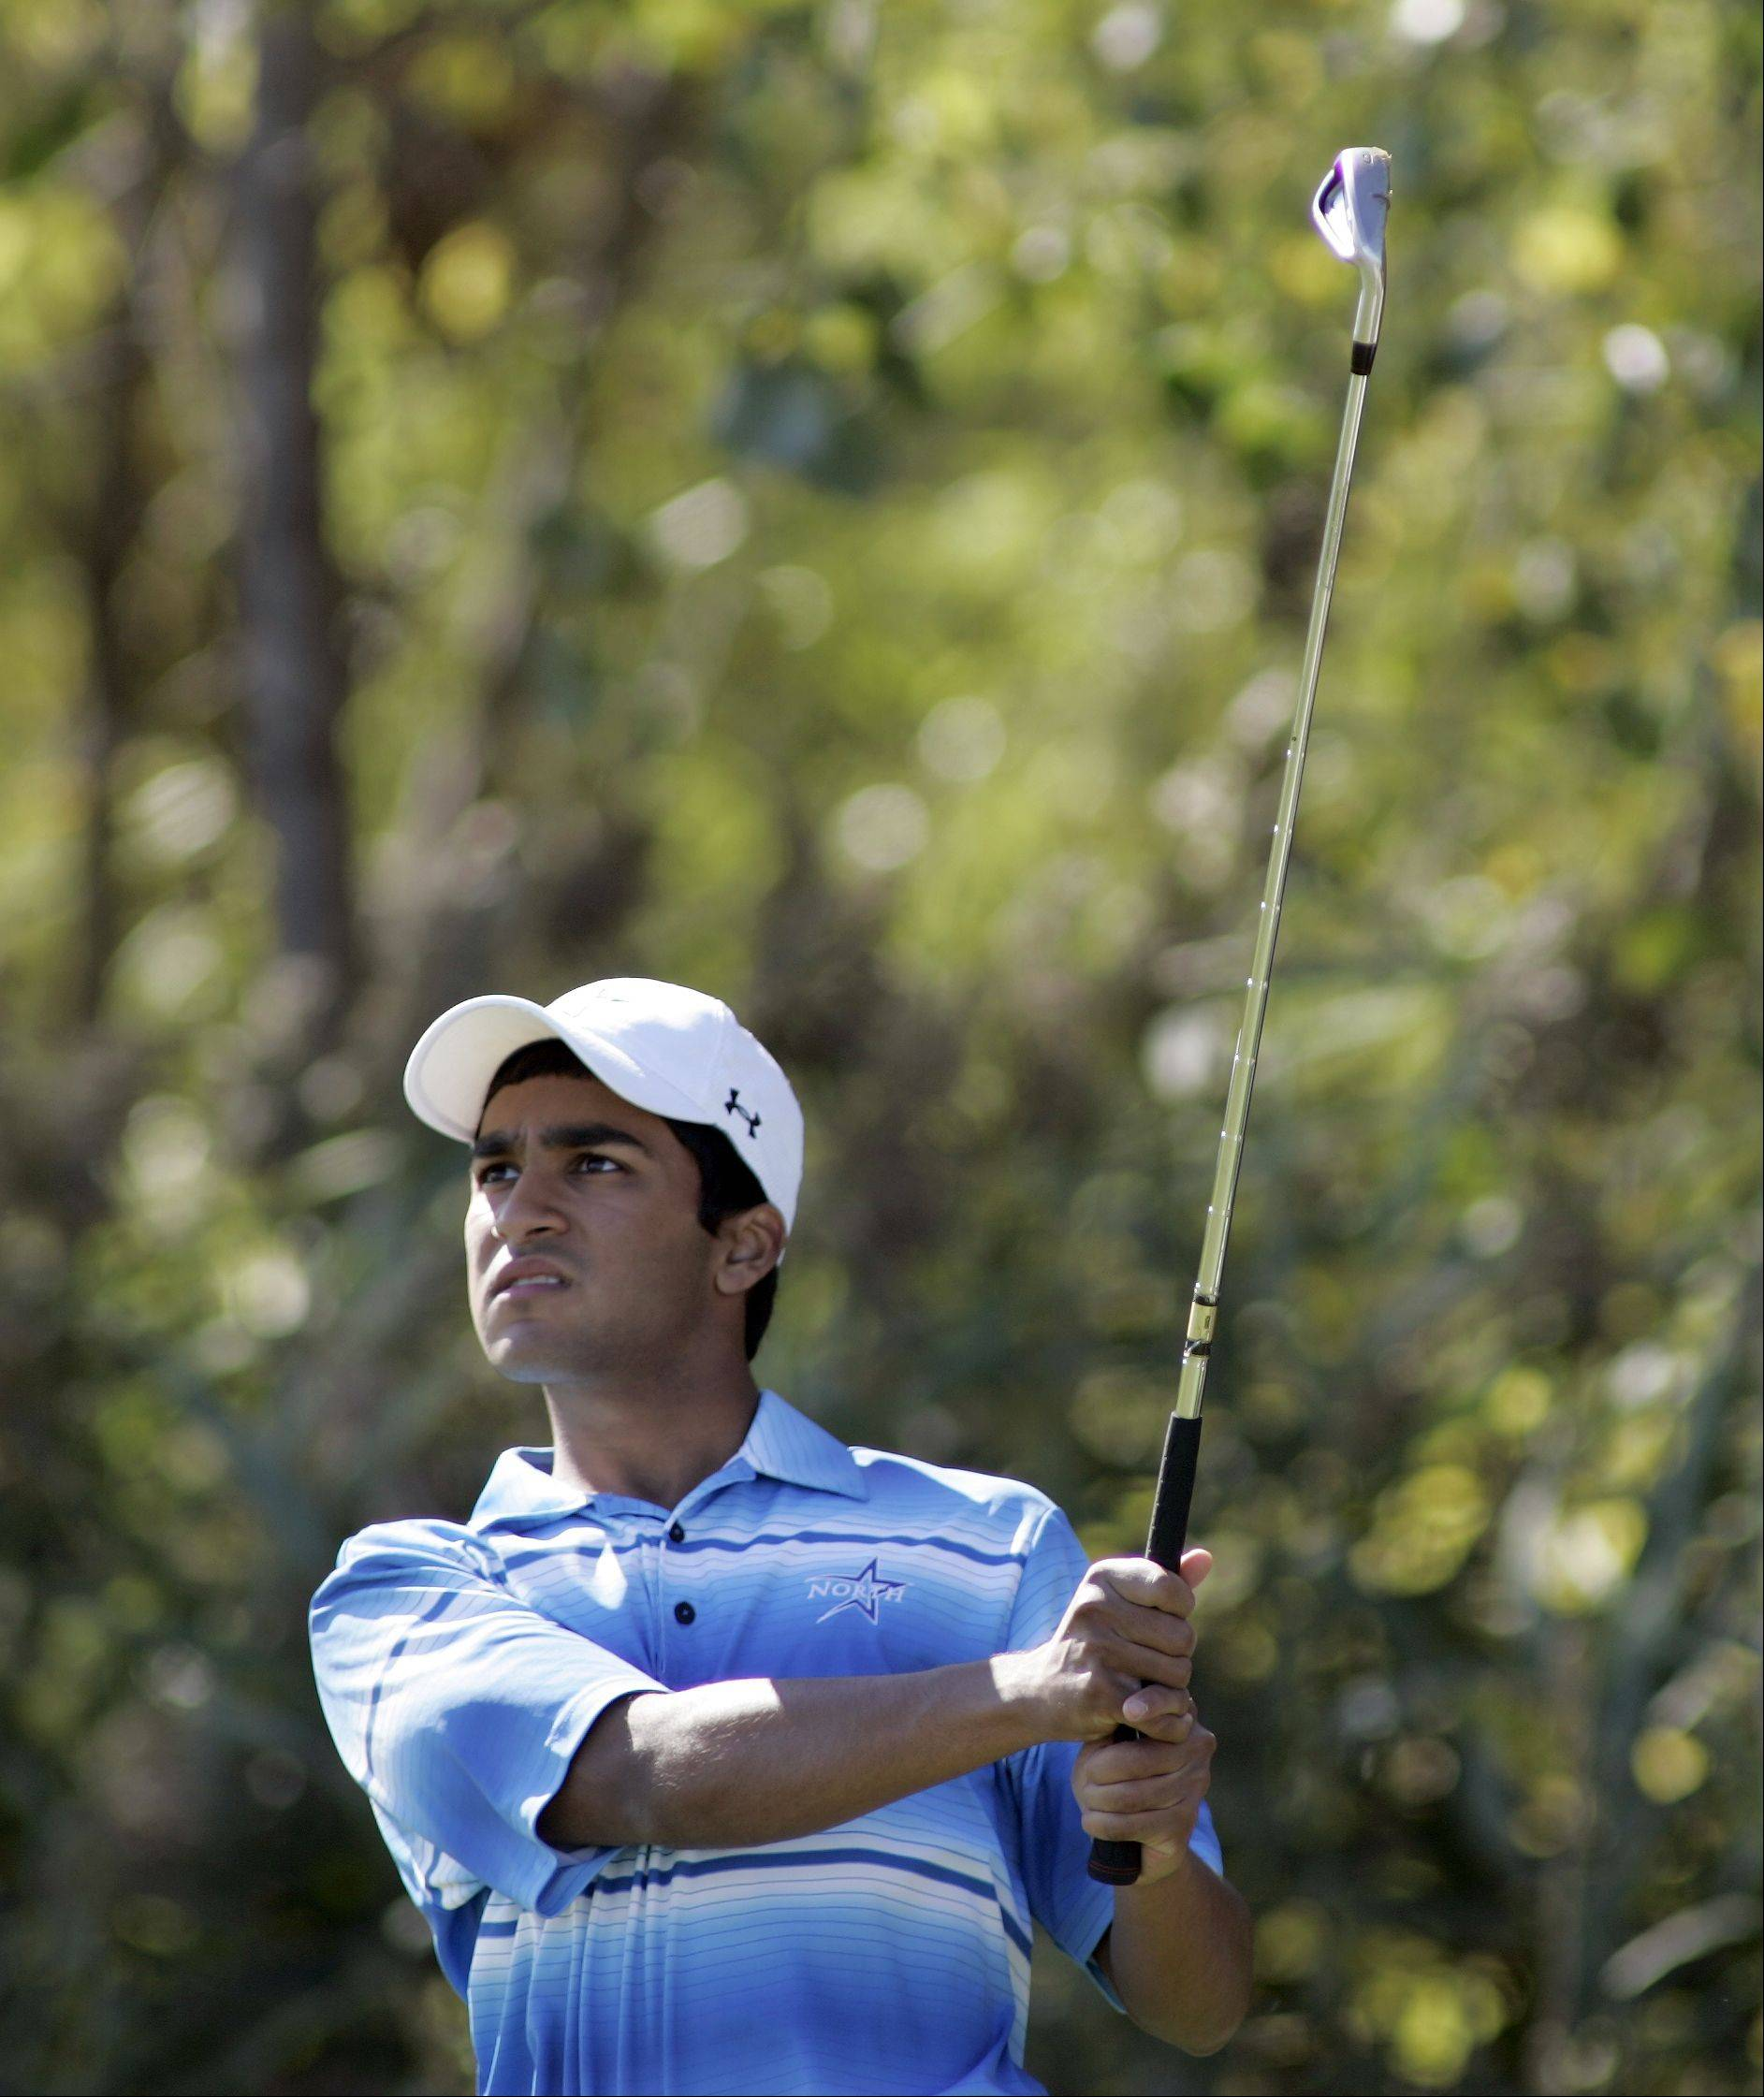 St. Charles North's Raghav Cherala won the Class 3A Larkin regional title Tuesday with a 1-over par 73 at The Highlands of Elgin.